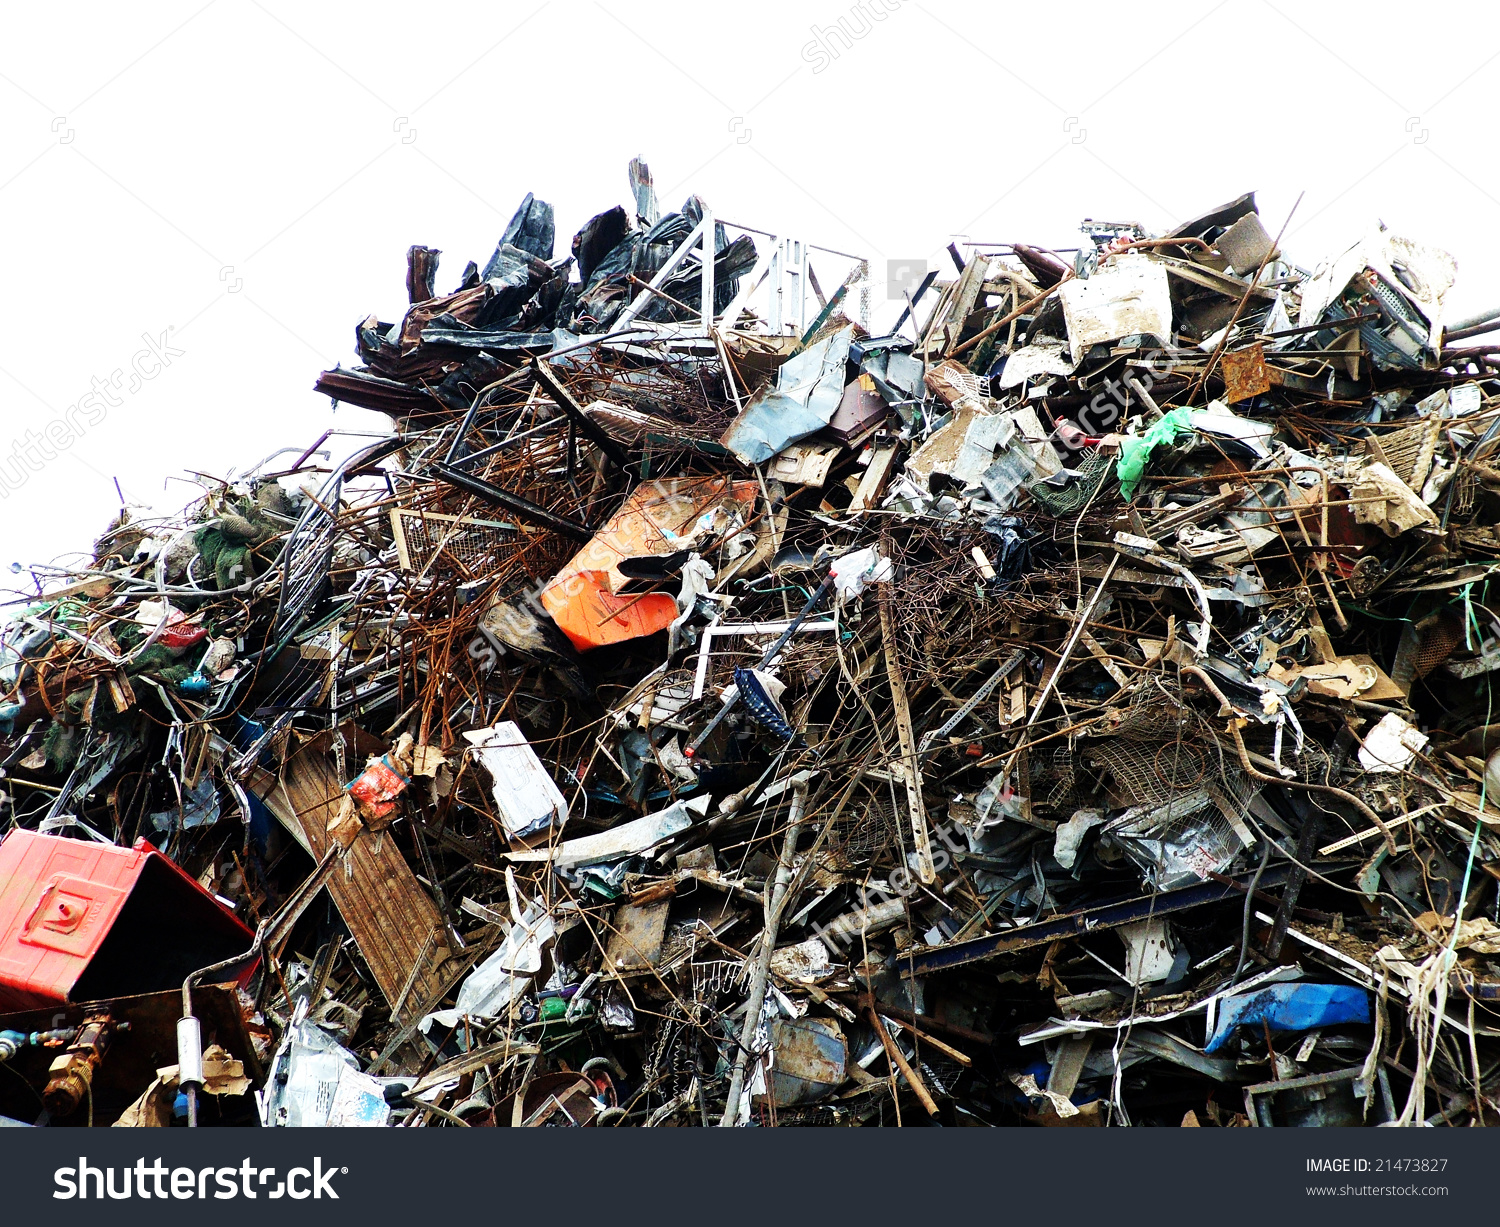 Scrap Yard Stock Photo 21473827.